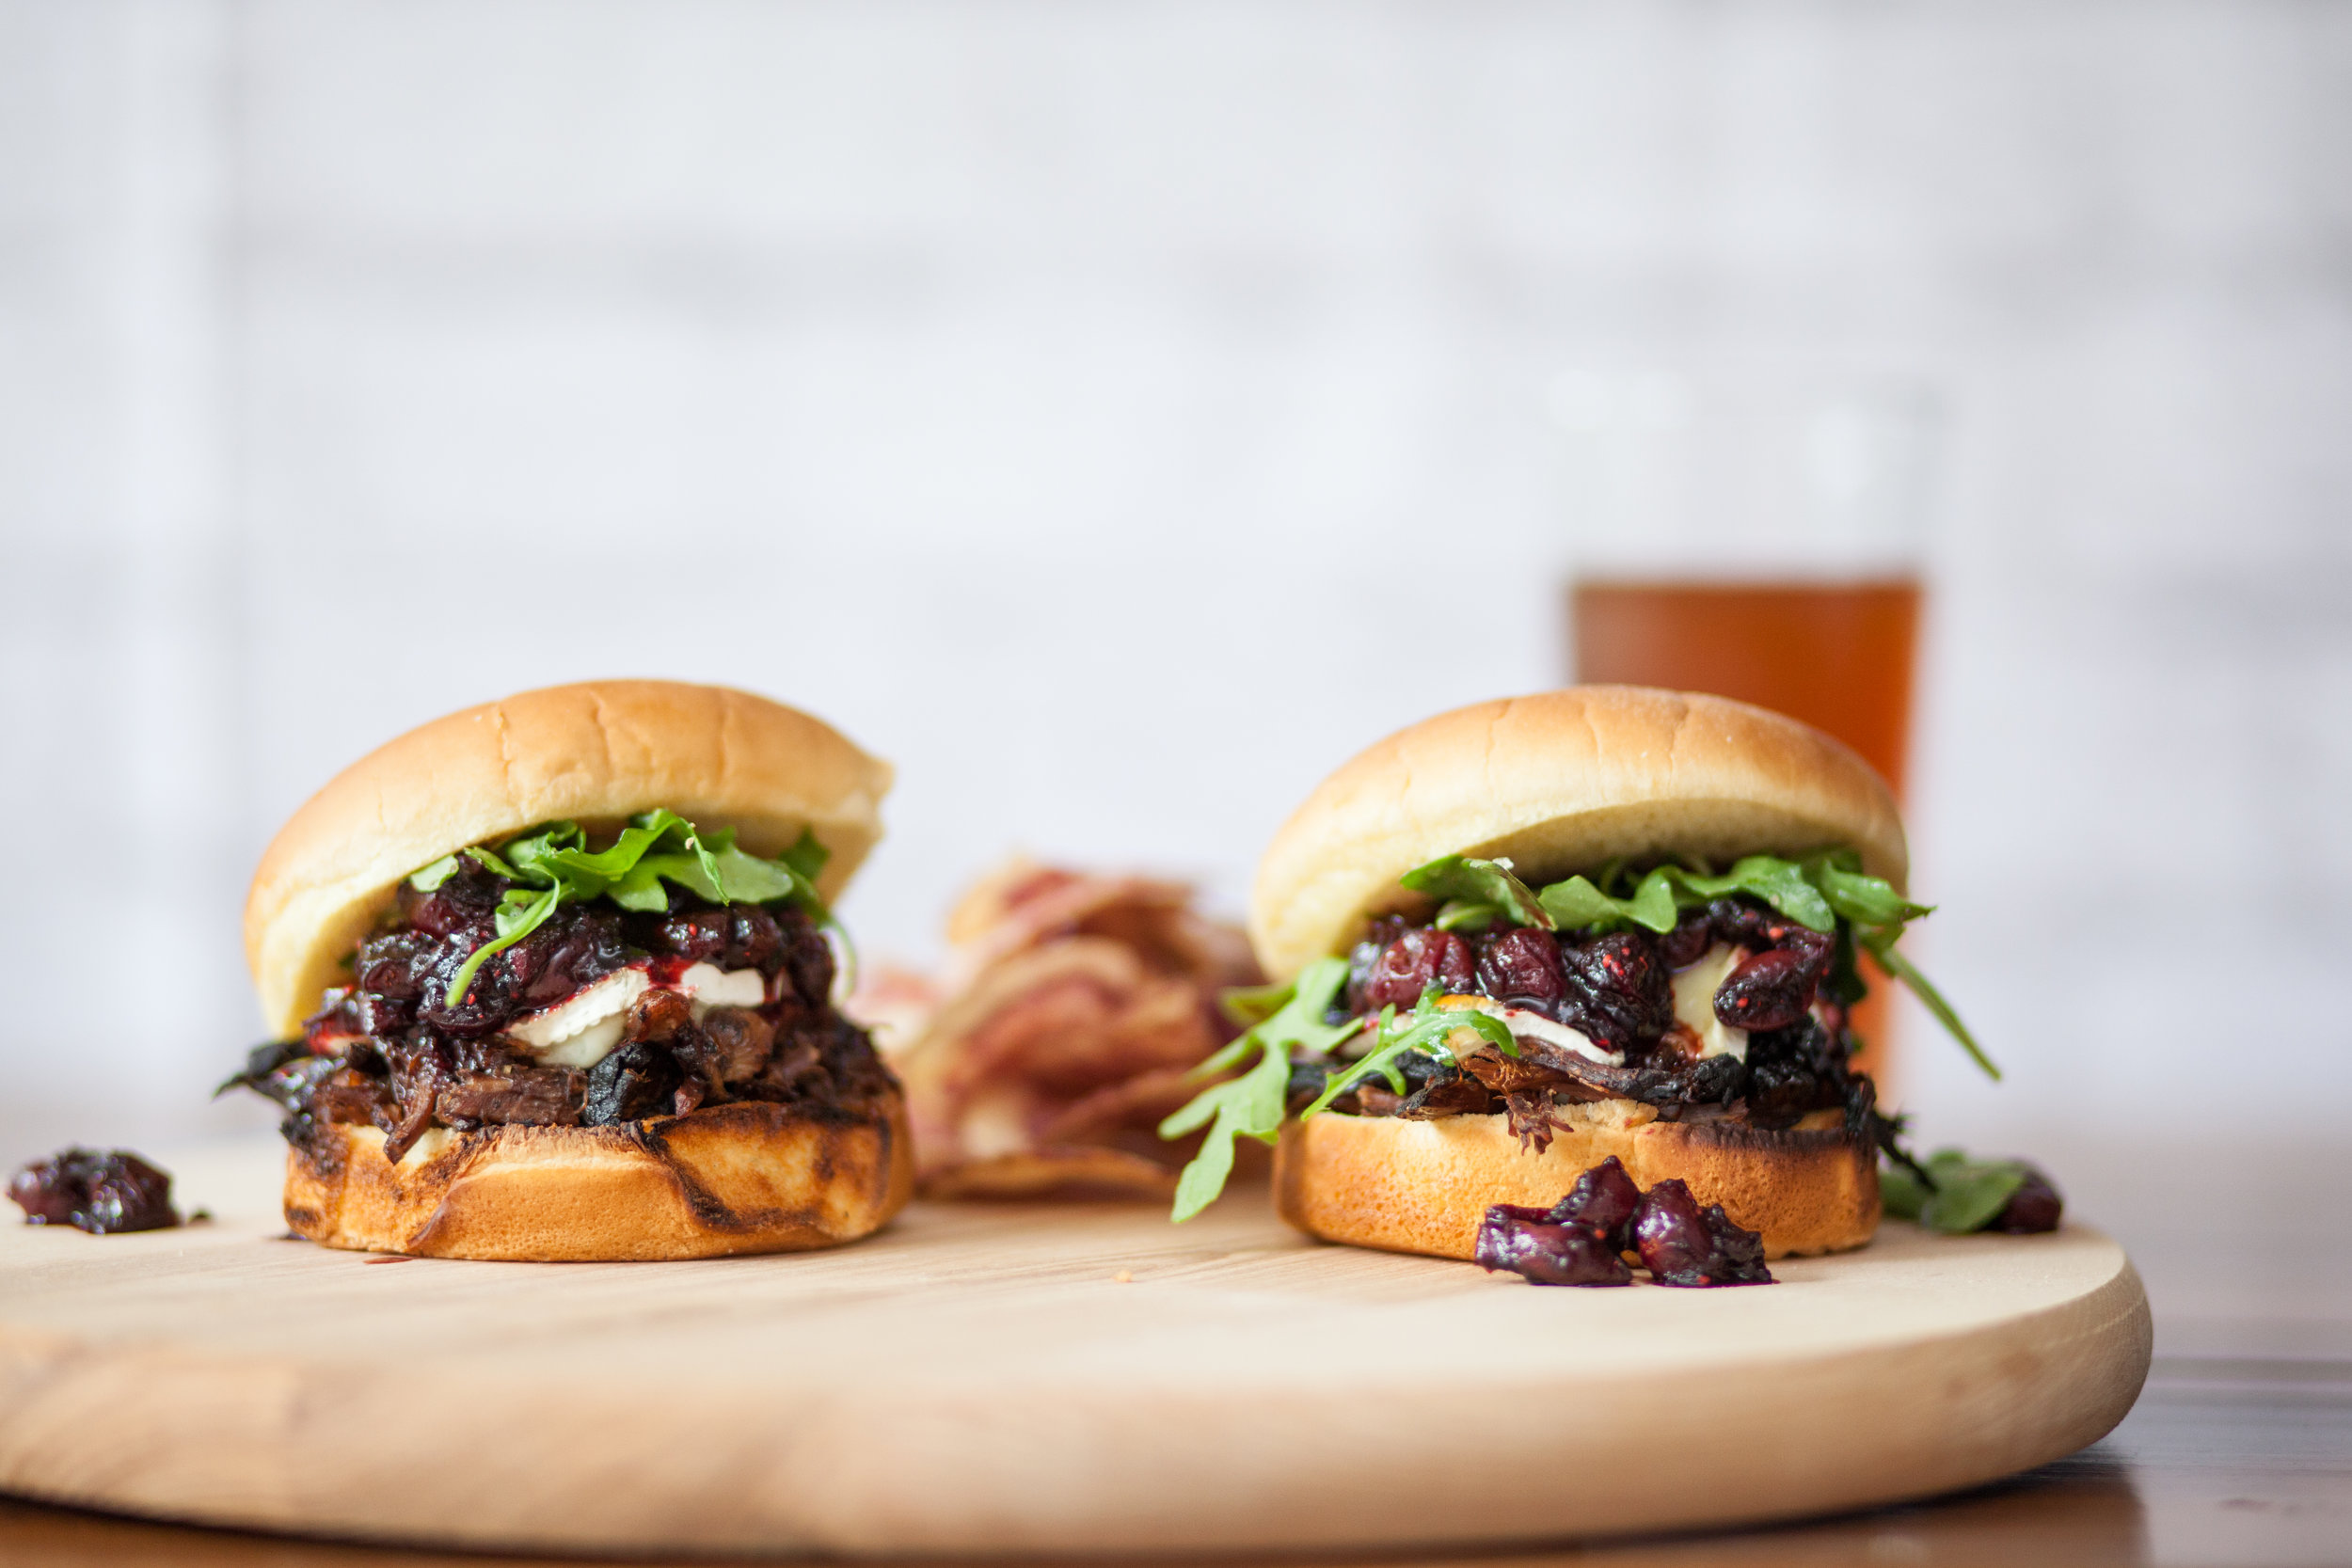 7. Steak and Brie Sandwiches with Balsamic Cranberry Sauce - Steak, Brie, and Cranberry Sandwiches are savory and sweet and oh so satisfying. Slow cook the beef the night before and you'll be ready to relax during pregame.